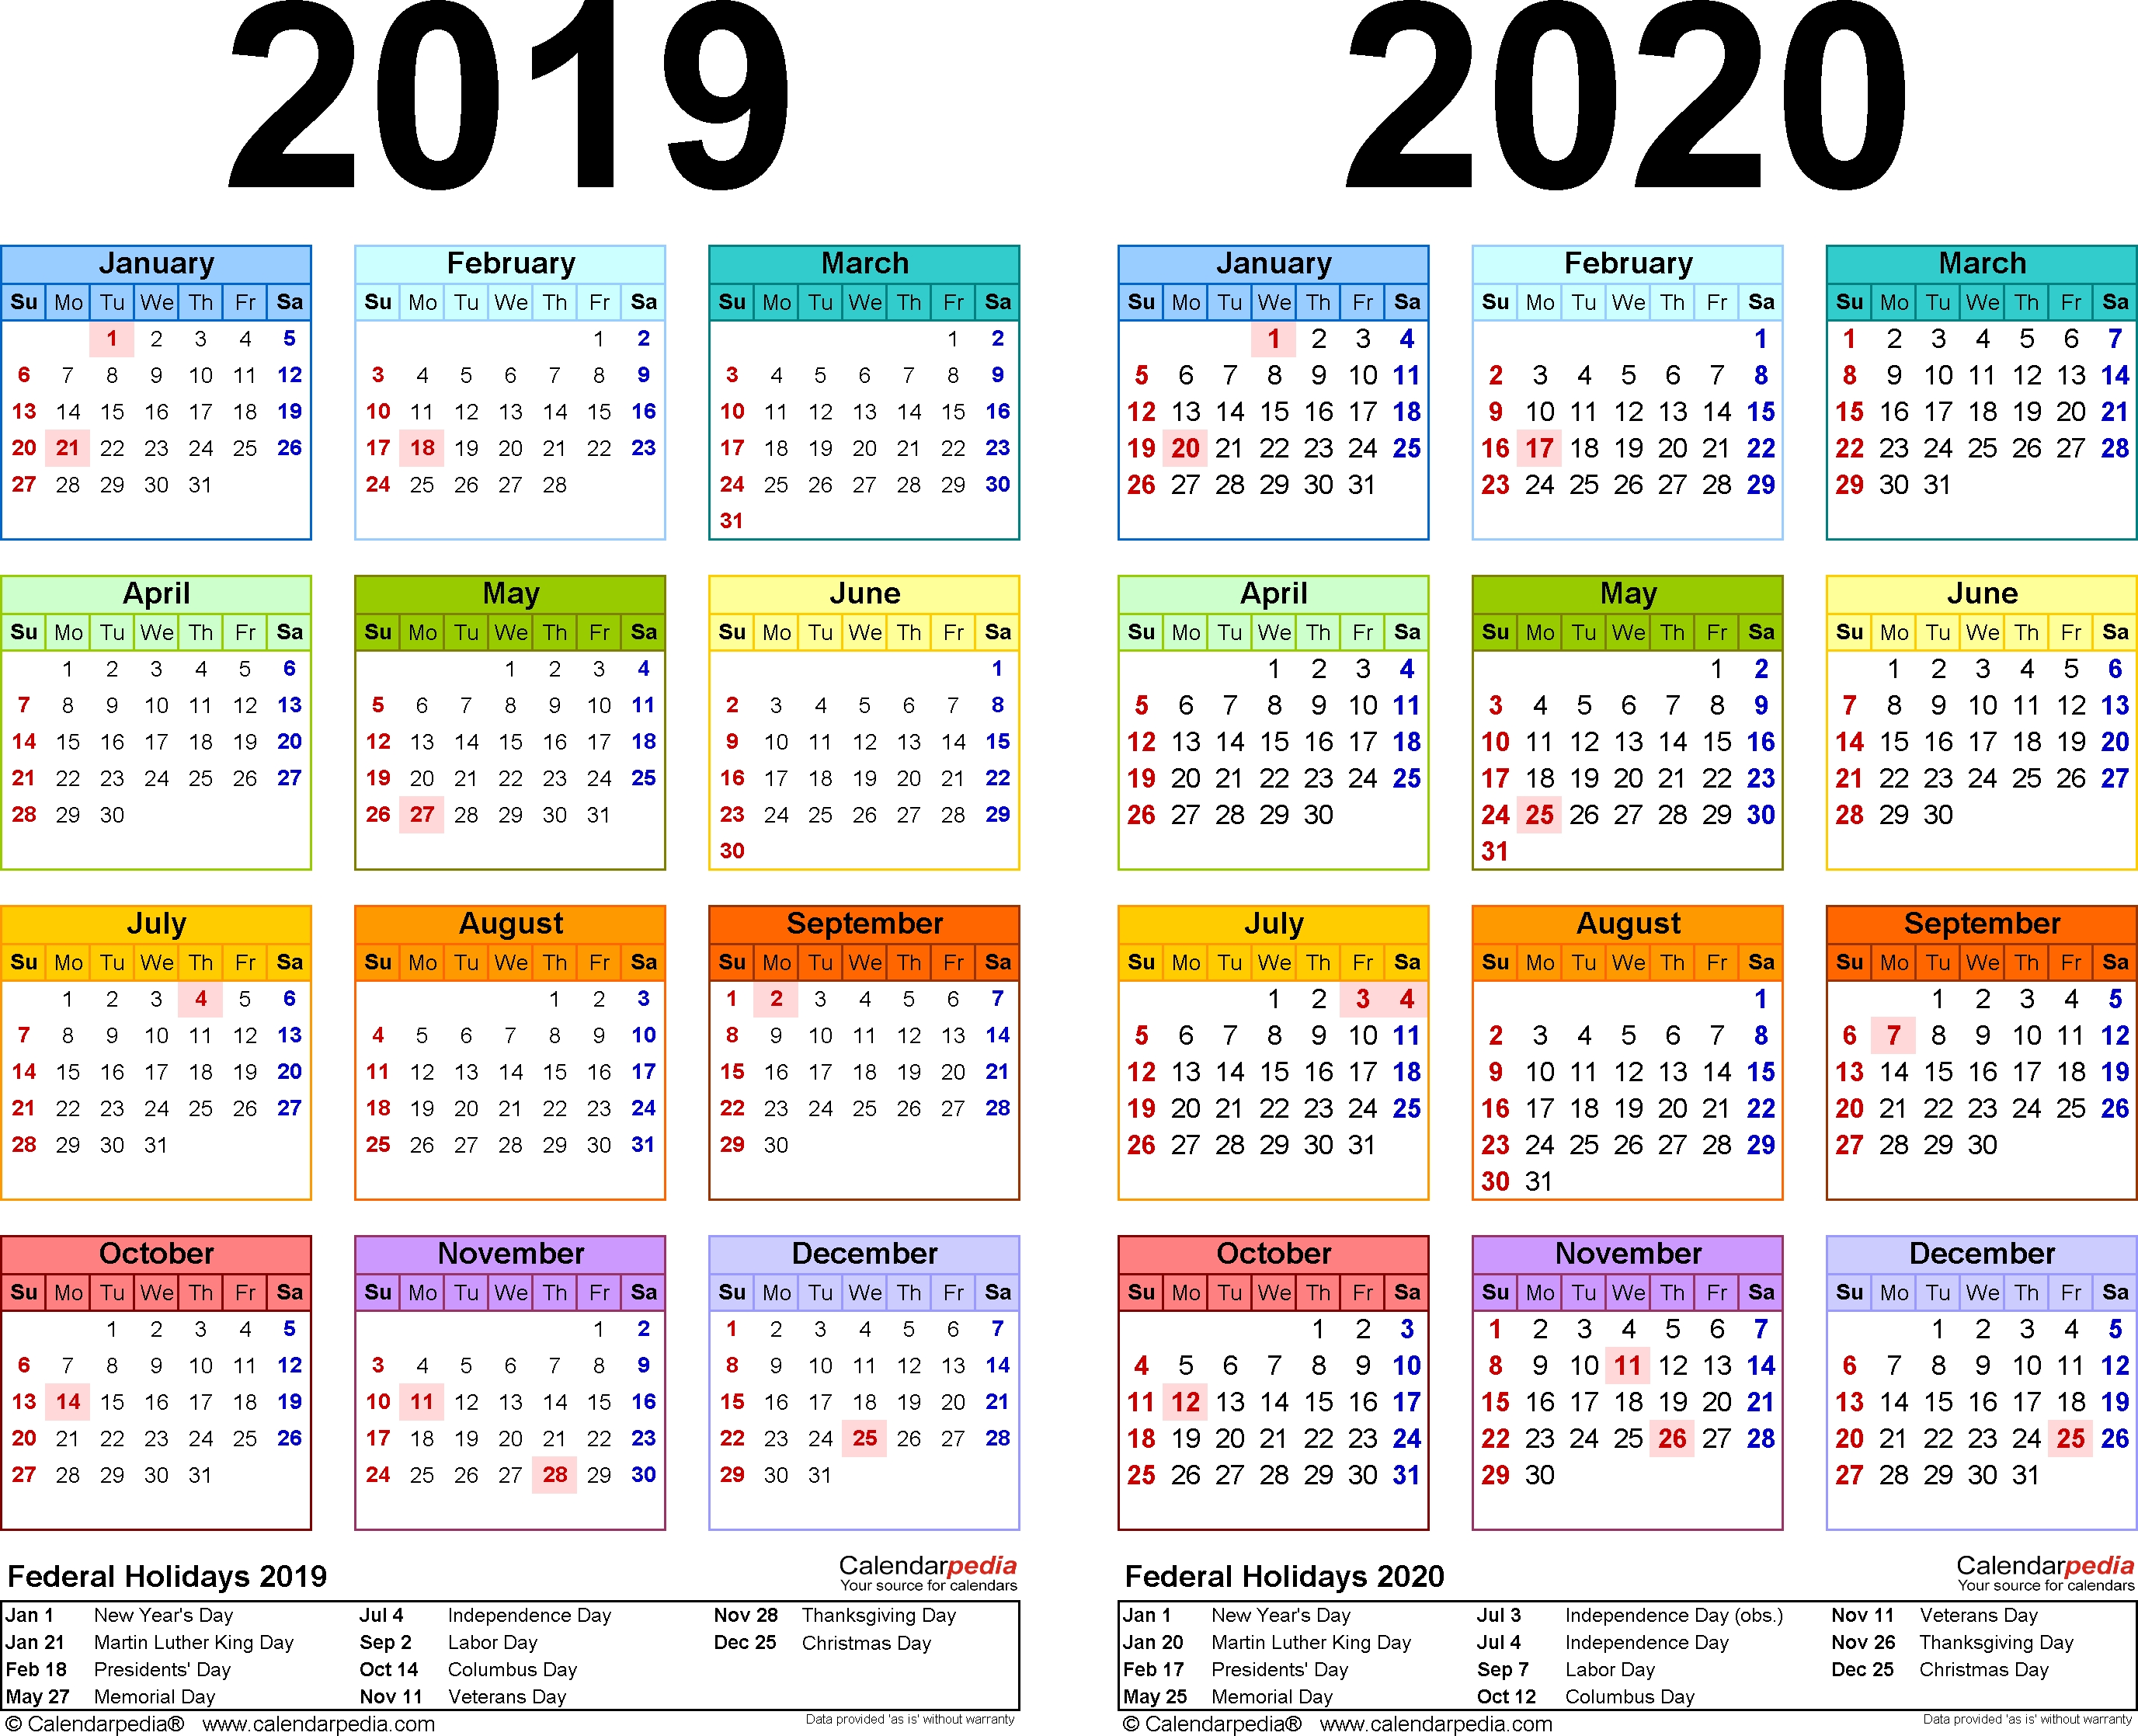 2019-2020 Calendar - Free Printable Two-Year Pdf Calendars pertaining to 2019 And 2020 Calendar Template Fill In